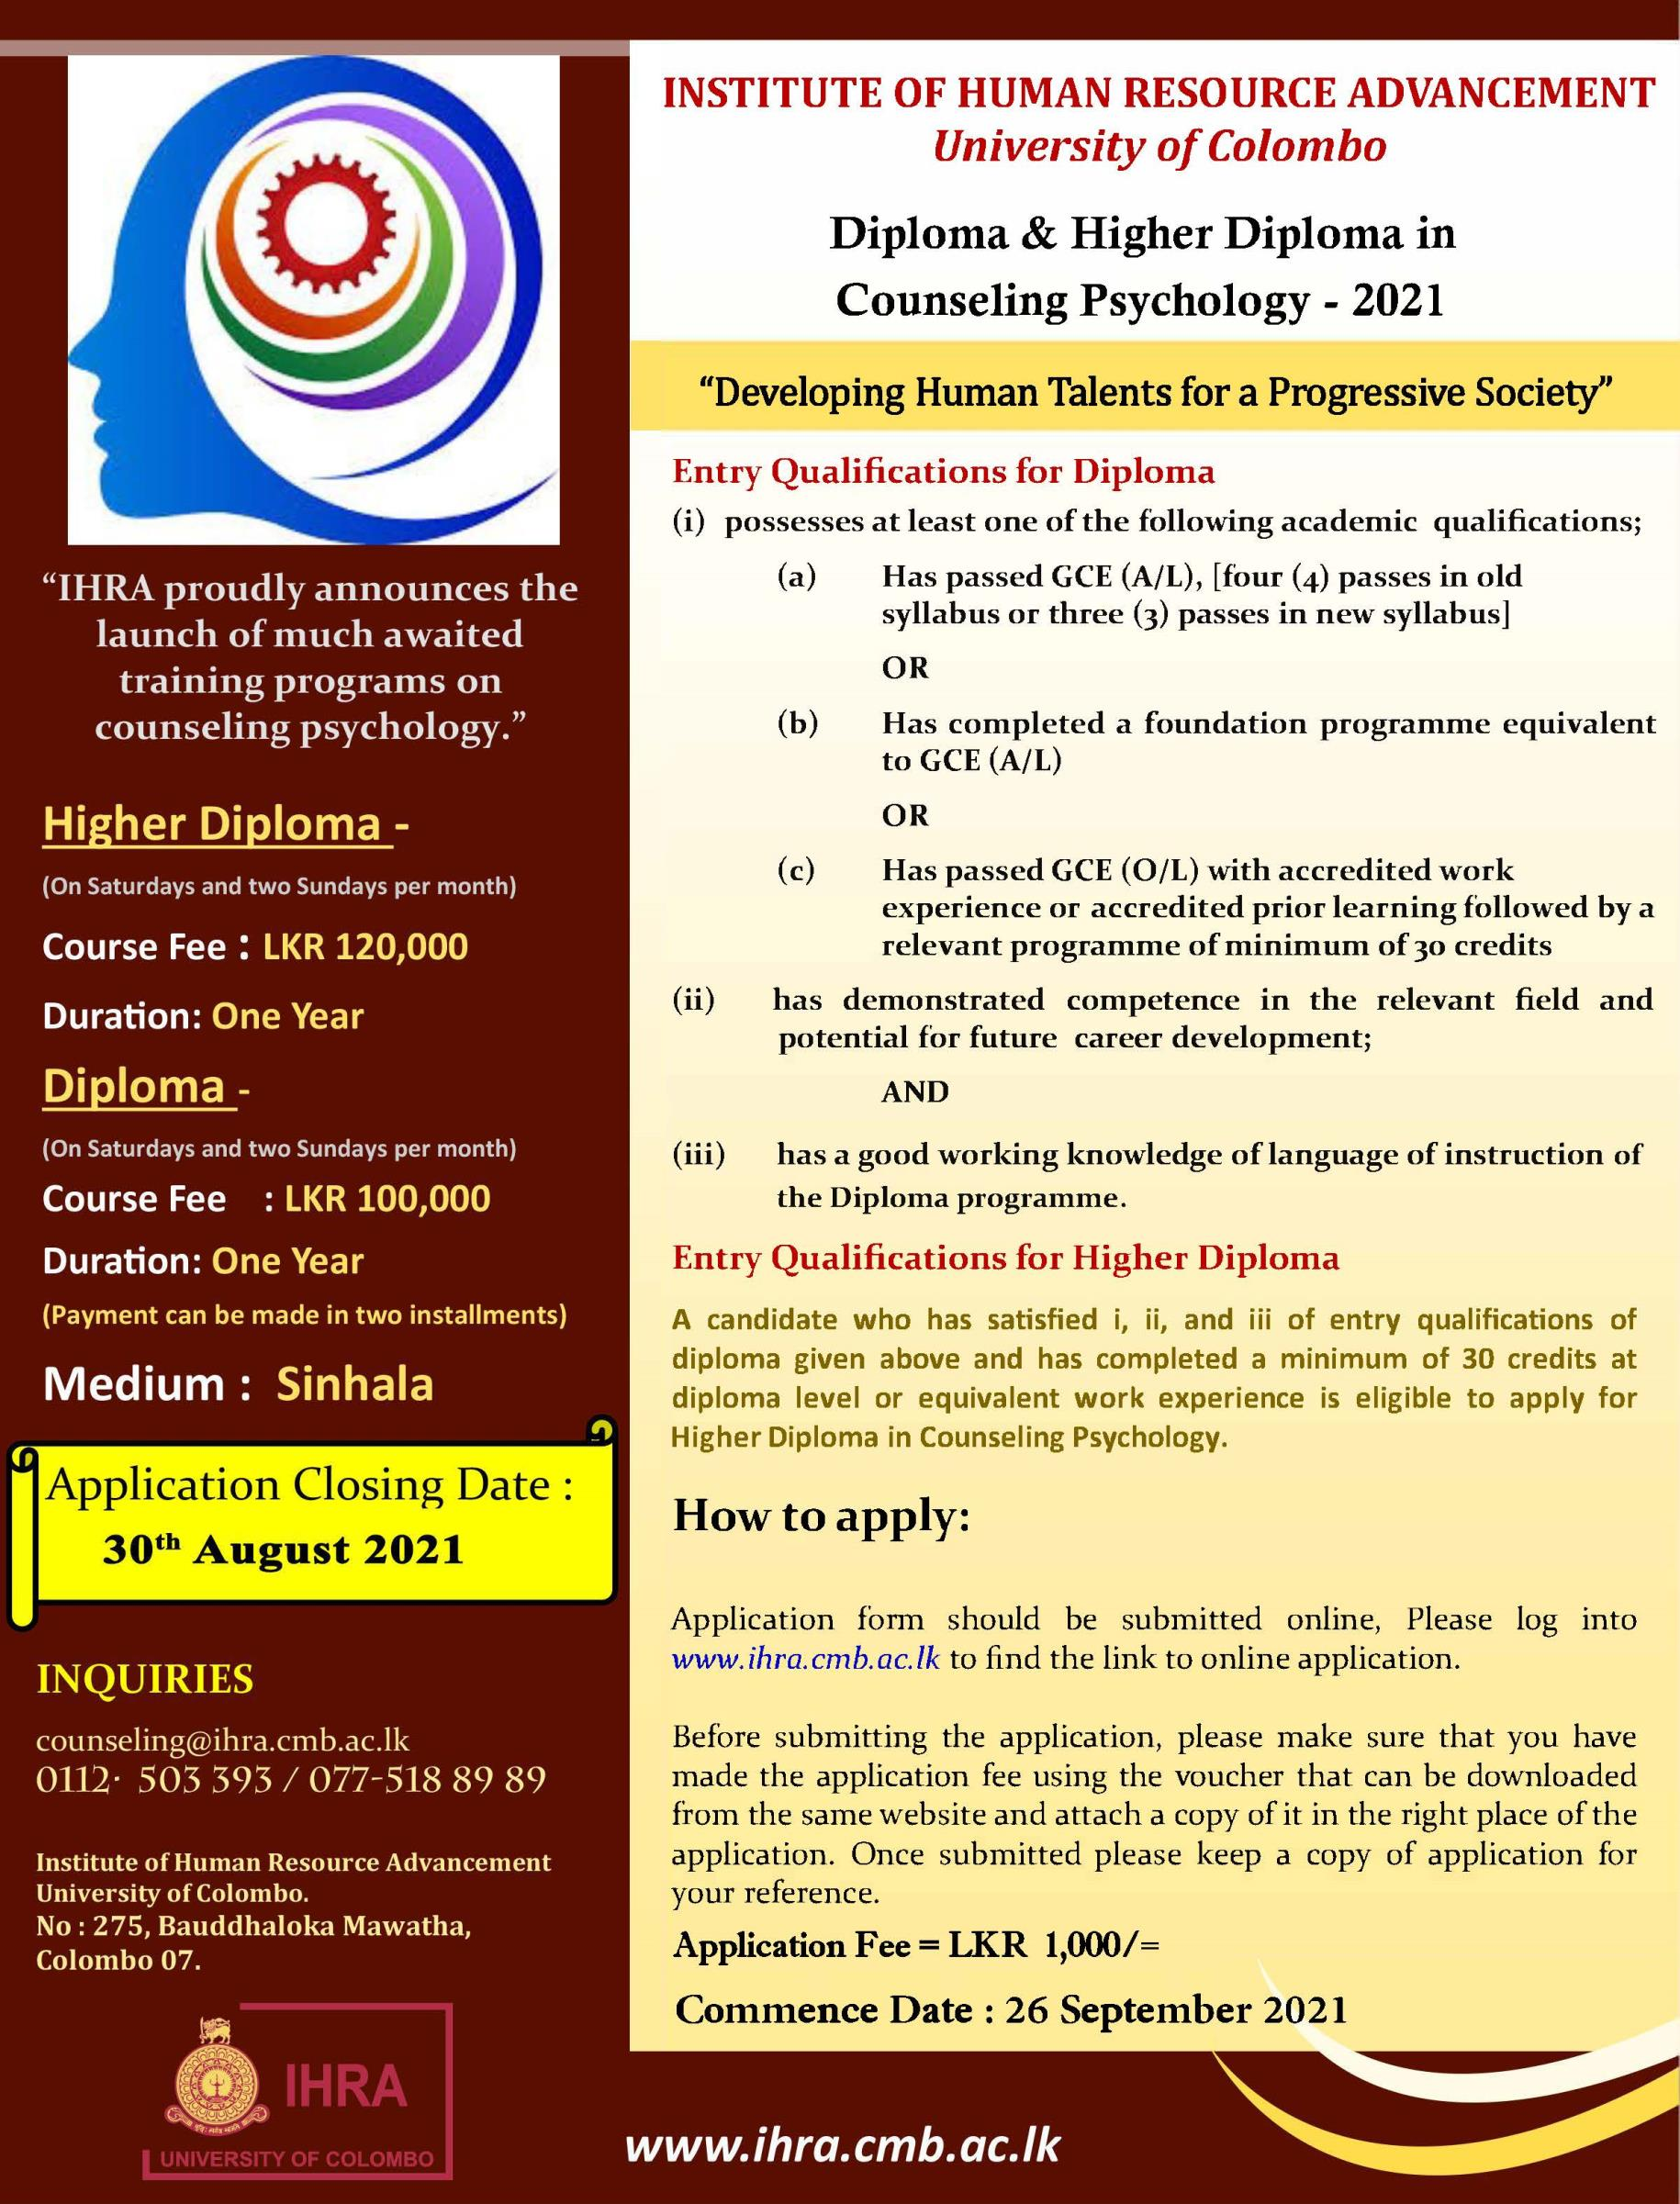 Apply for Diploma & Higher Diploma in Counseling Psychology 2021